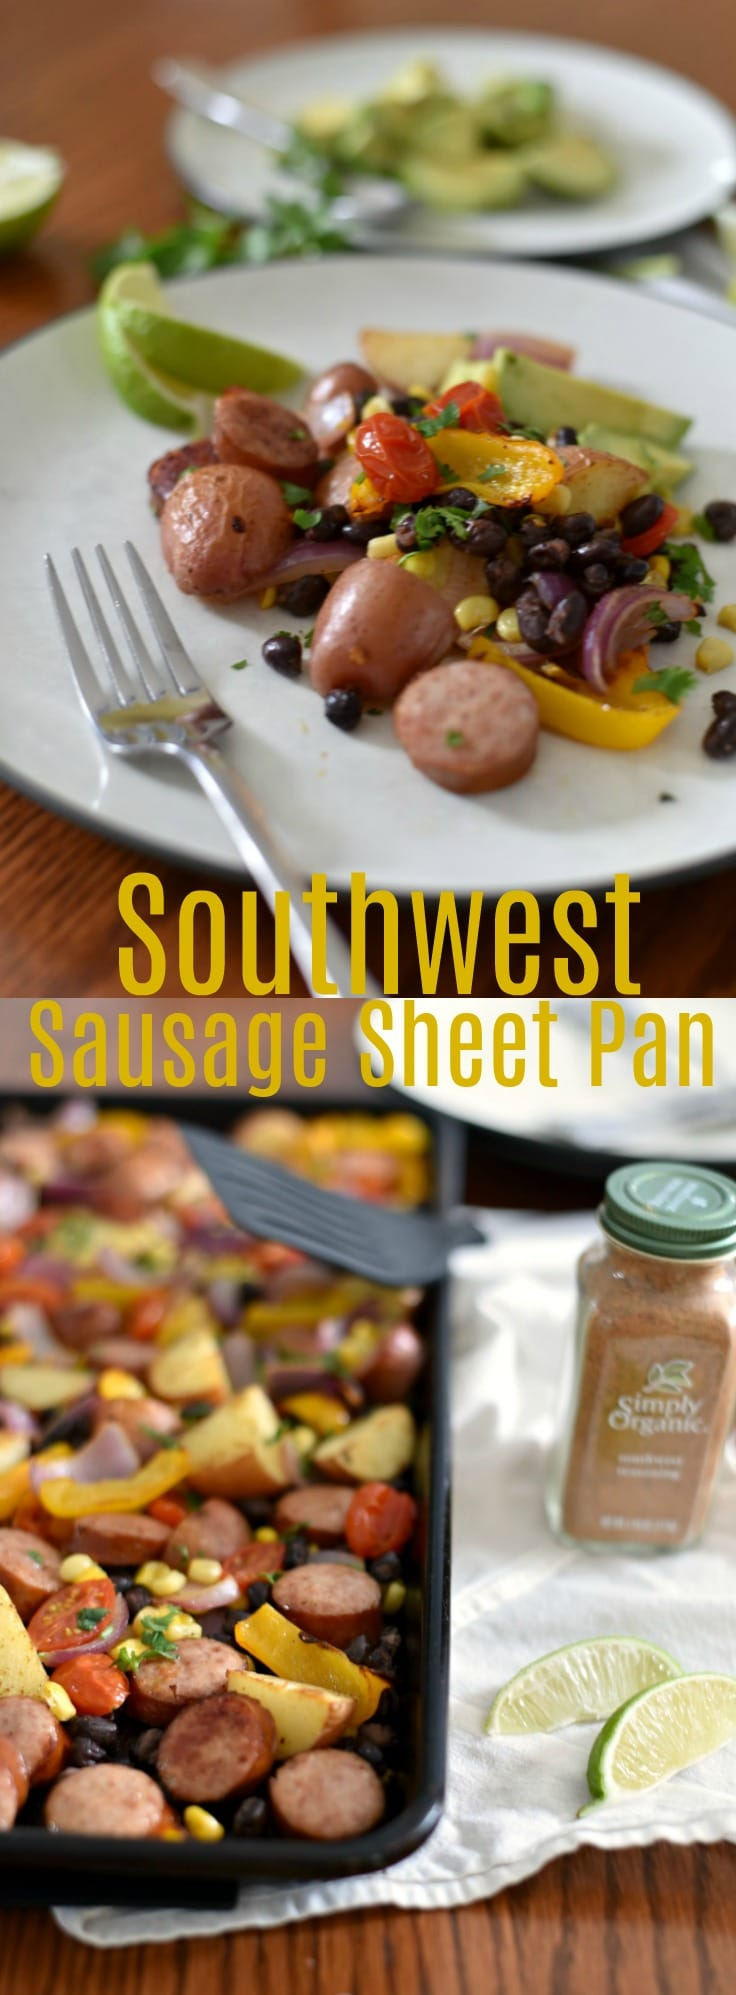 This easy sheet pan meal takes less than 30 minutes and is studded with fantastic southwest flavors! 